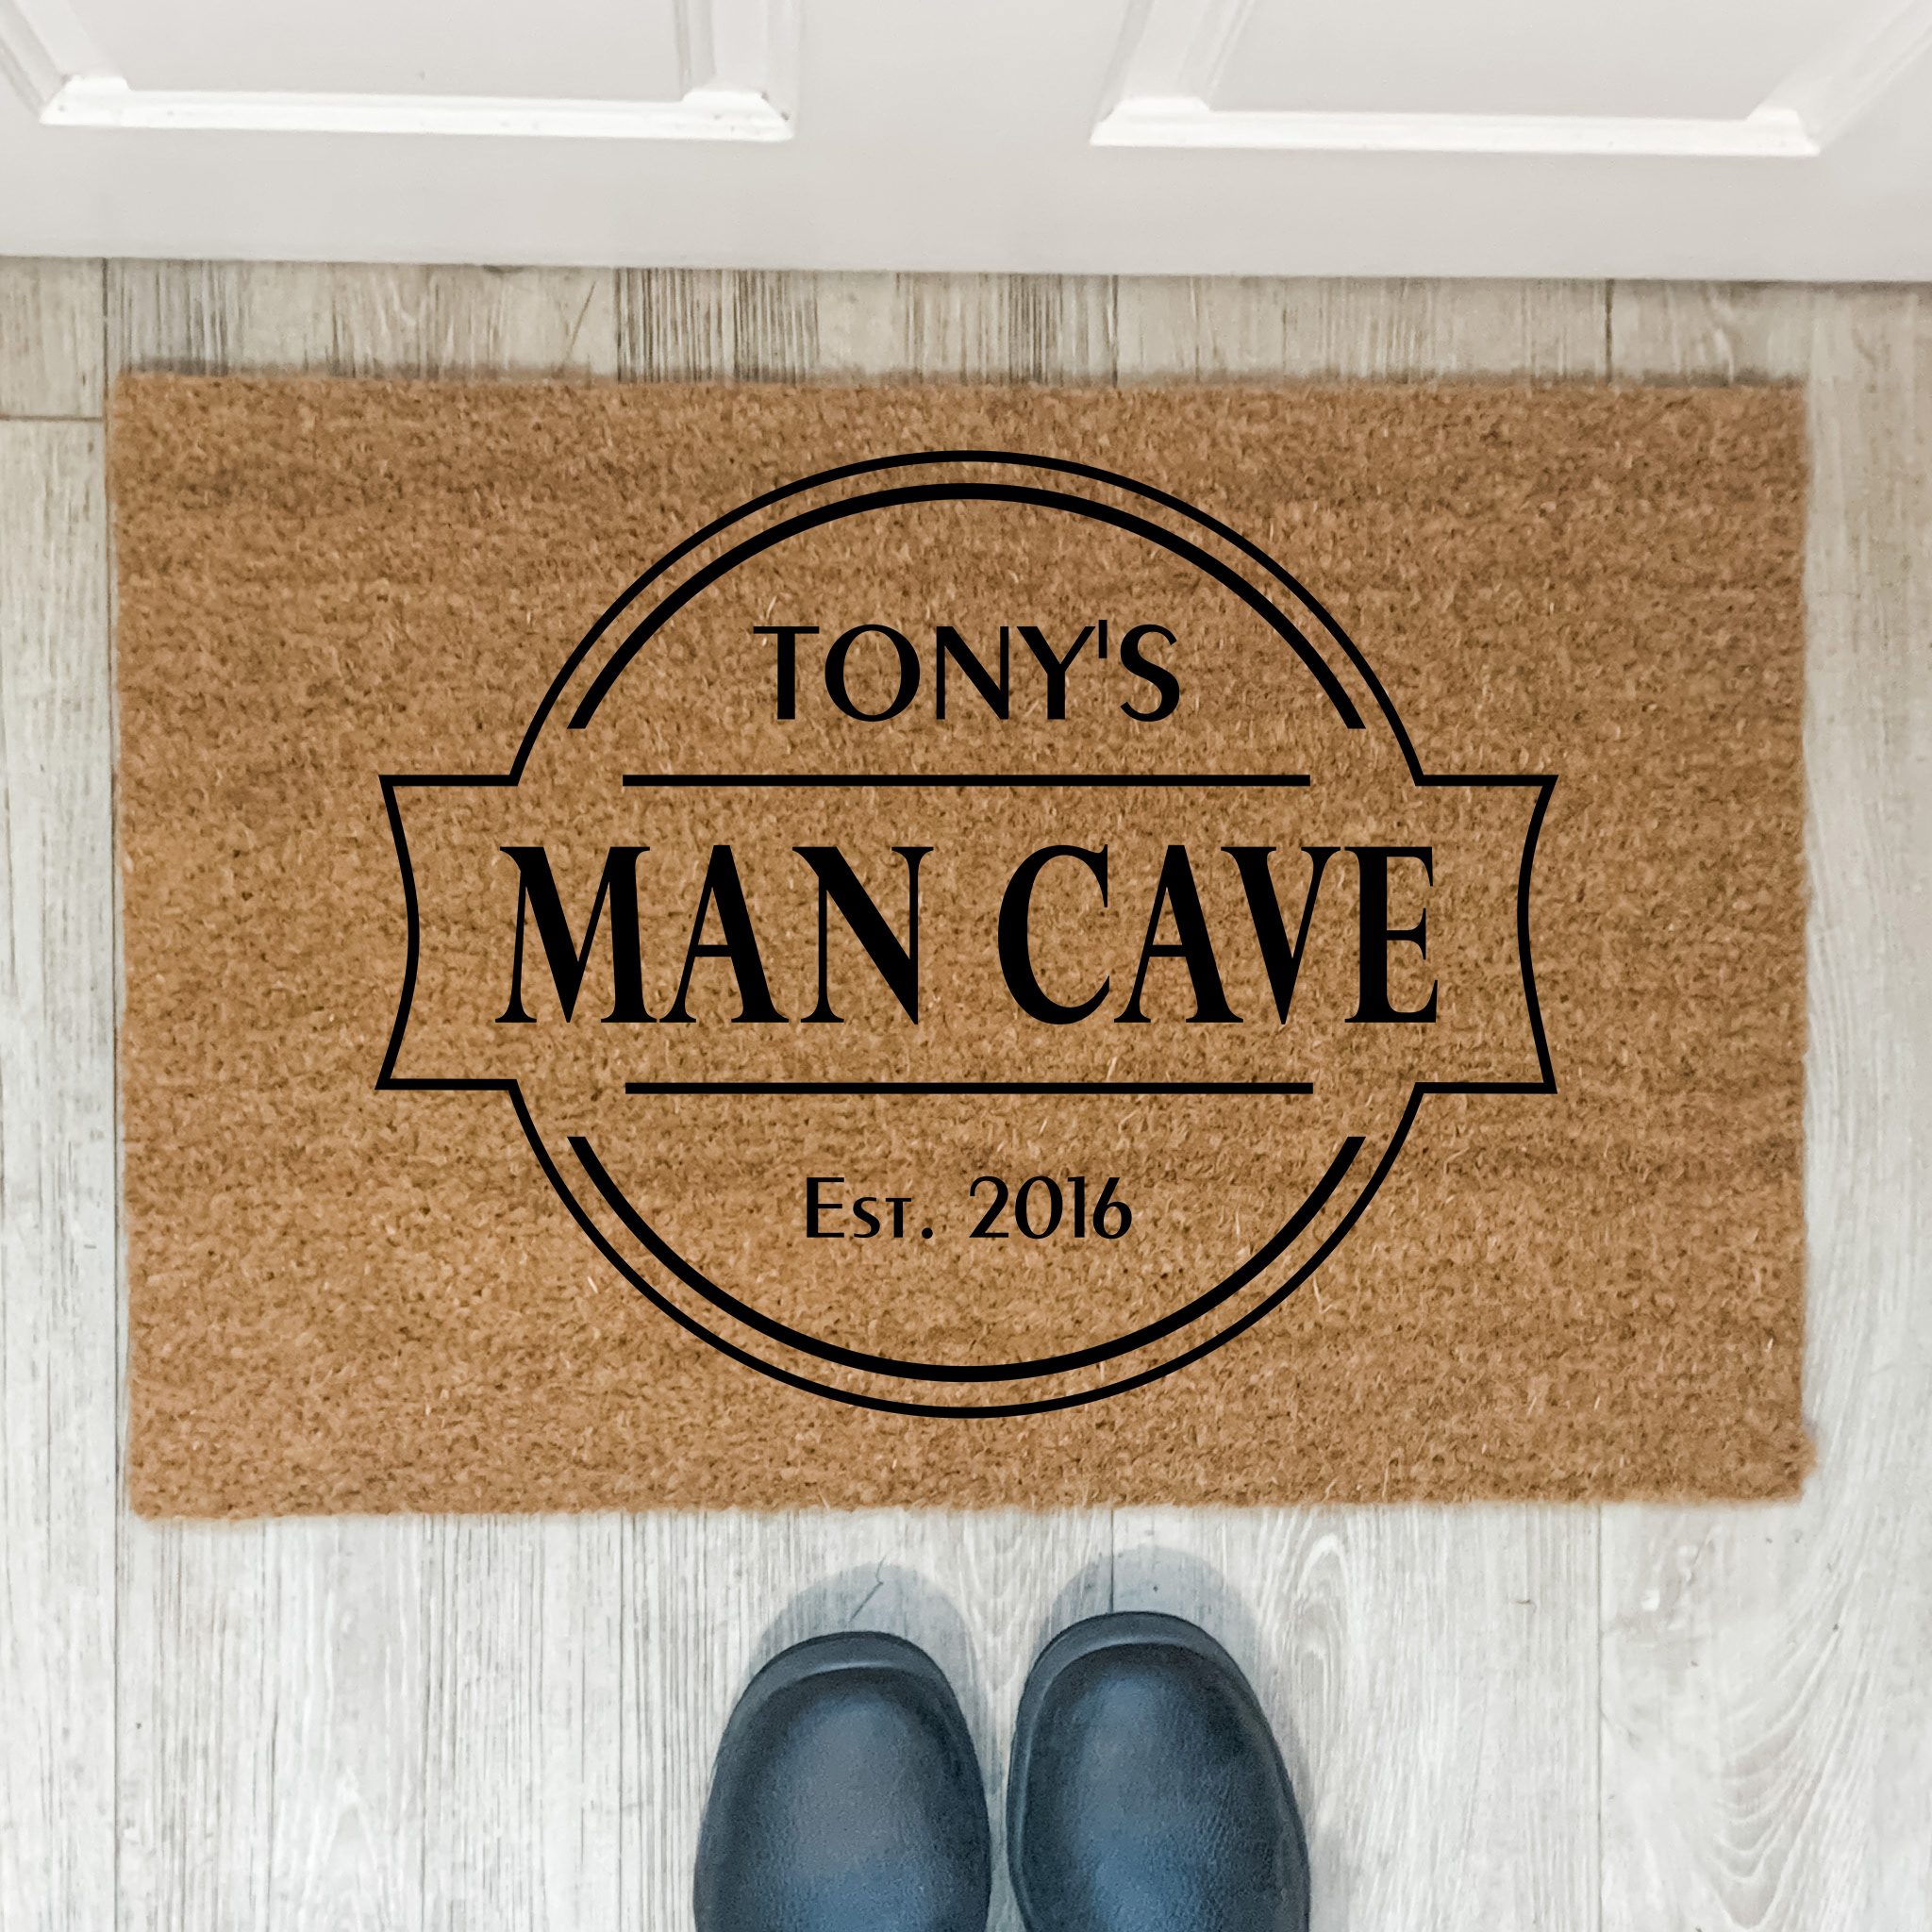 man cave door mat, custoom mancave sign